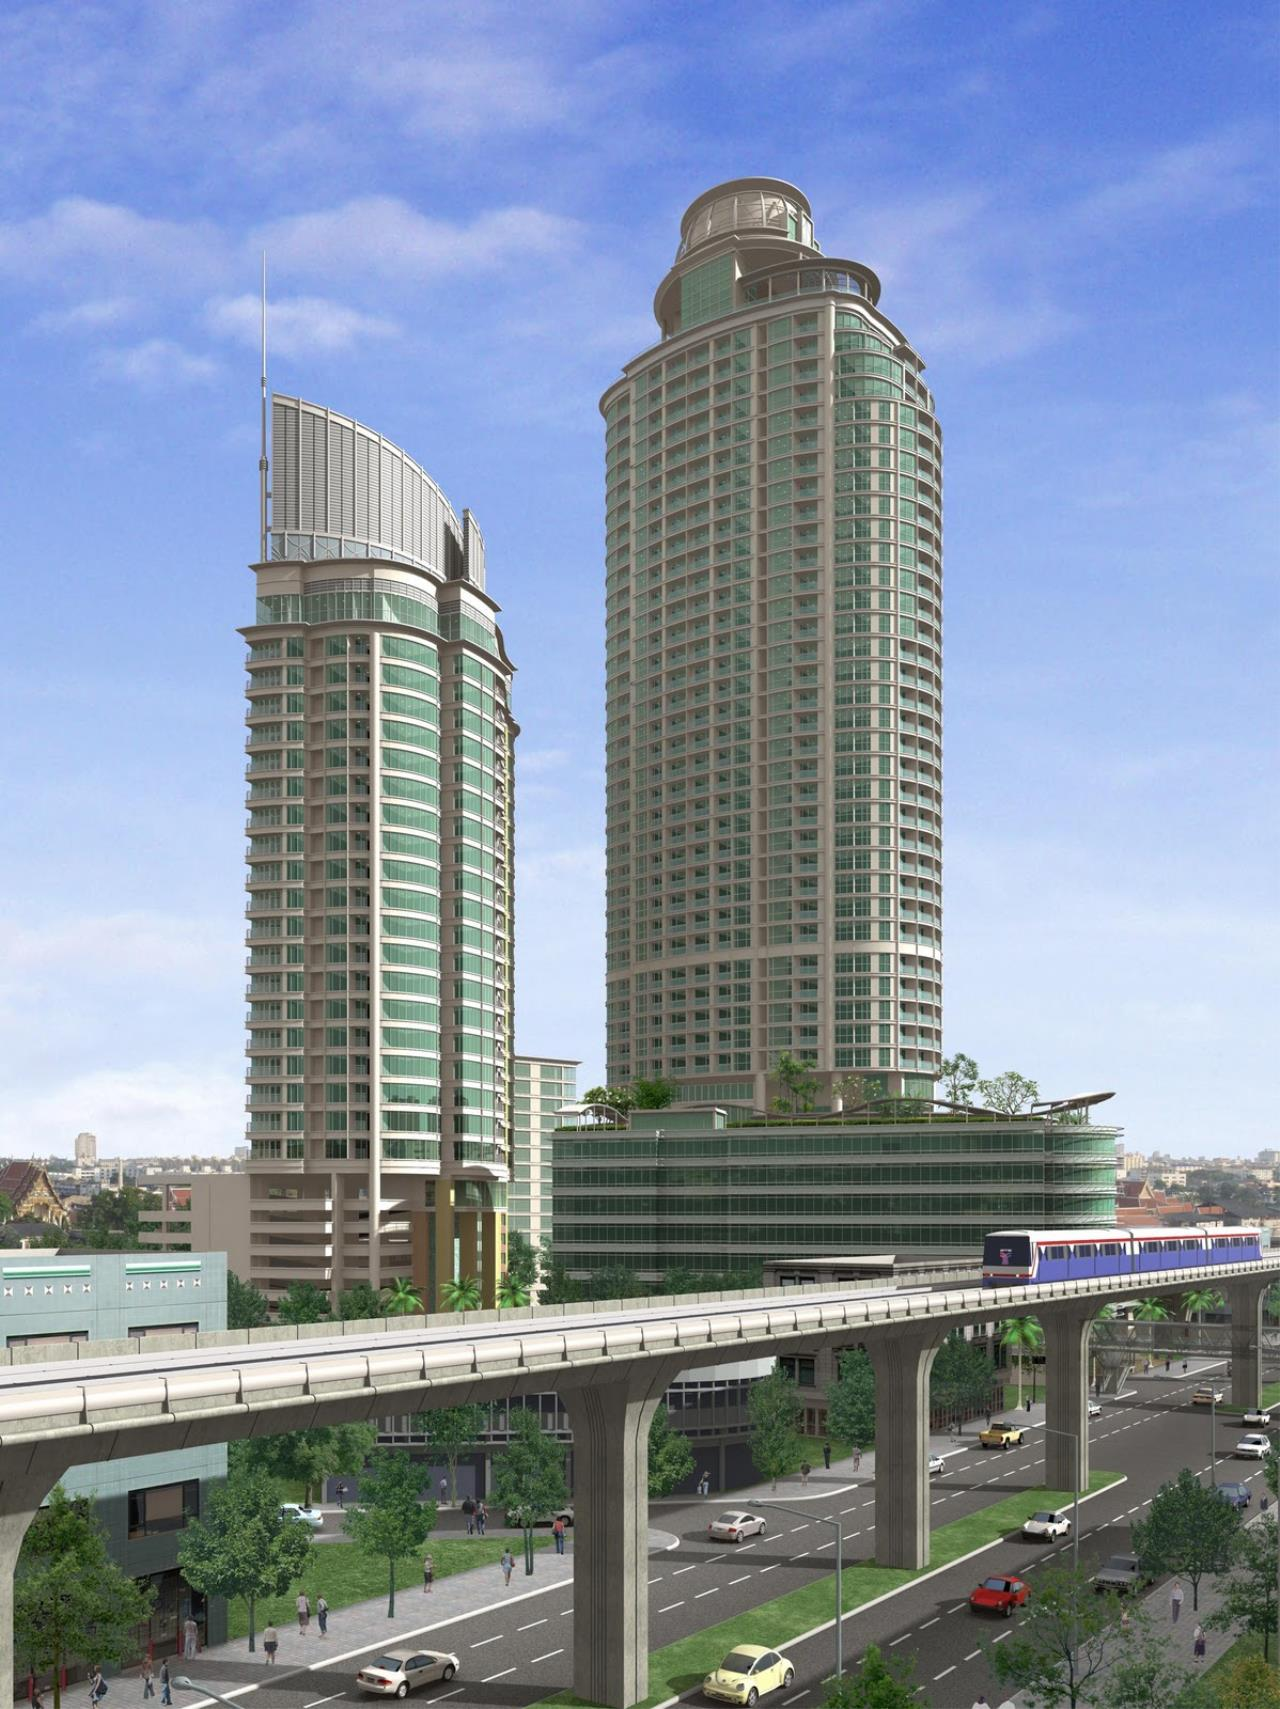 RE/MAX CondoDee Agency's Top Floor Luxury Penthouse - Exclusive Offer (4M Baht off) 4